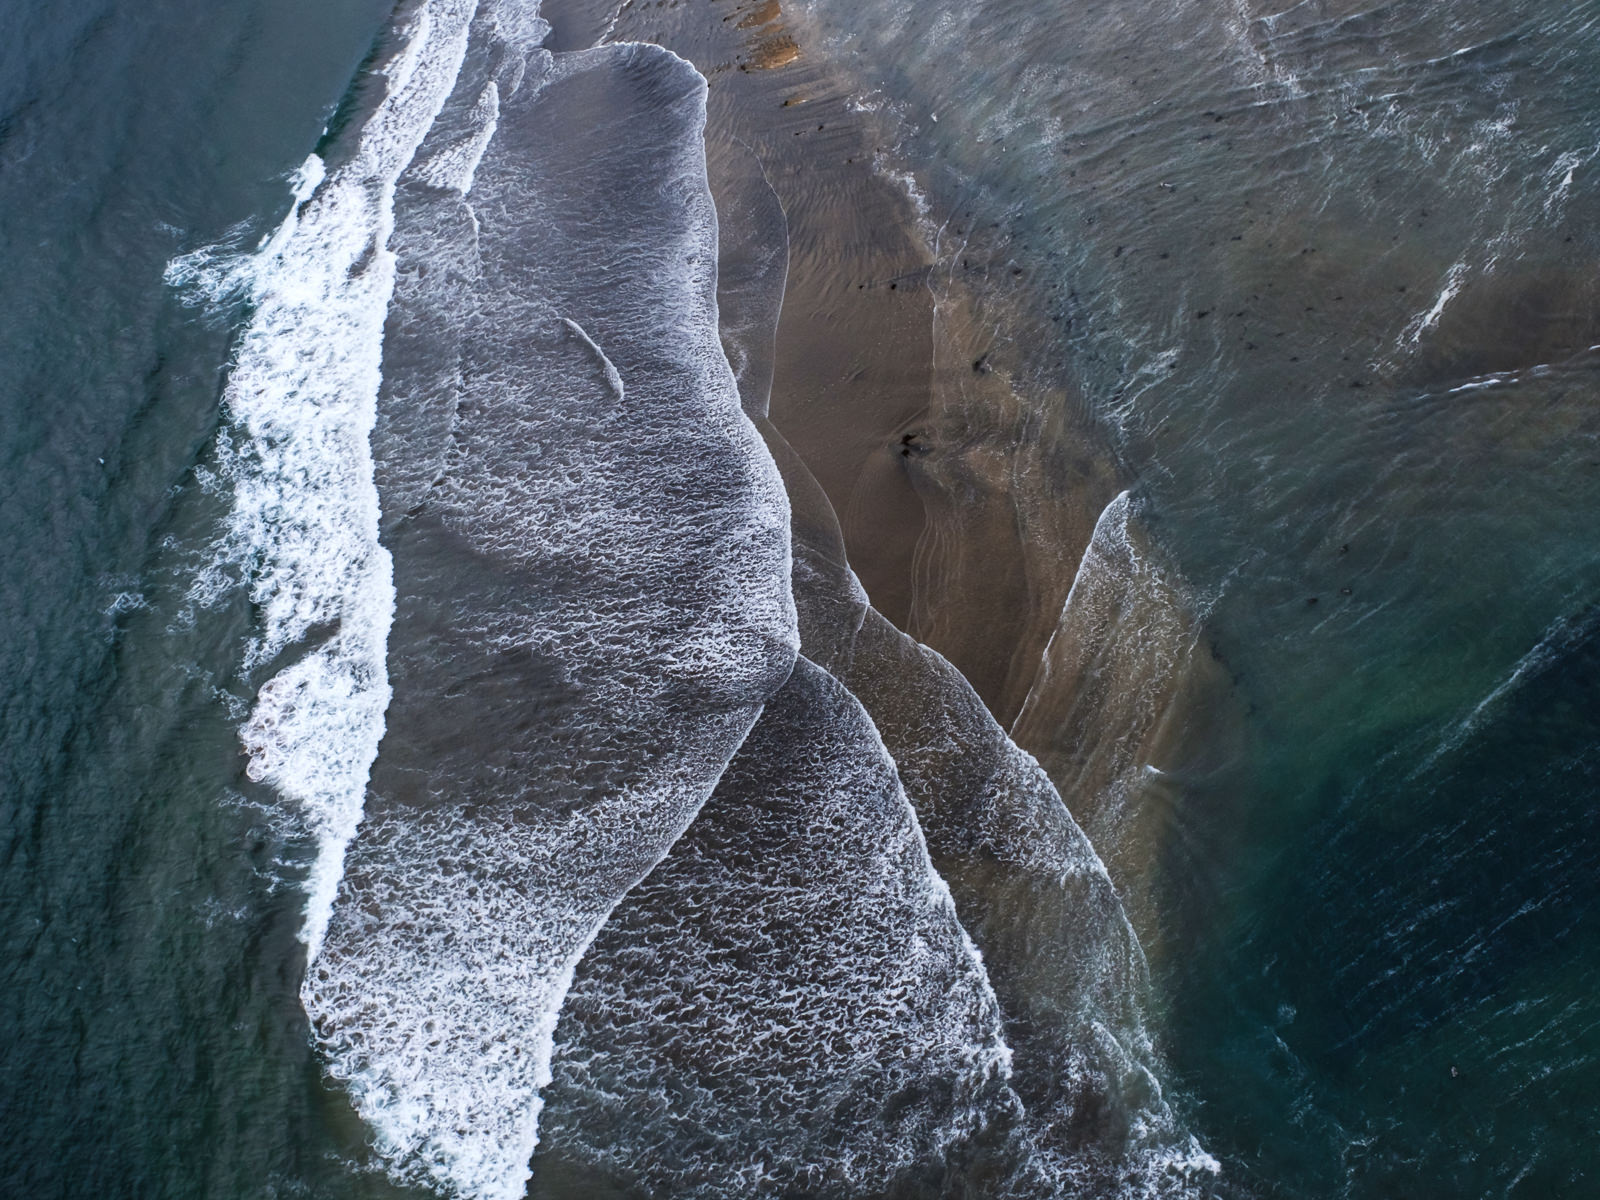 Icelandic layers. West Iceland coast line from above, shot taken from a small airplane   (XF 16-55mm f2.8 at 23mm 1/1000 f7.1 ISO800)